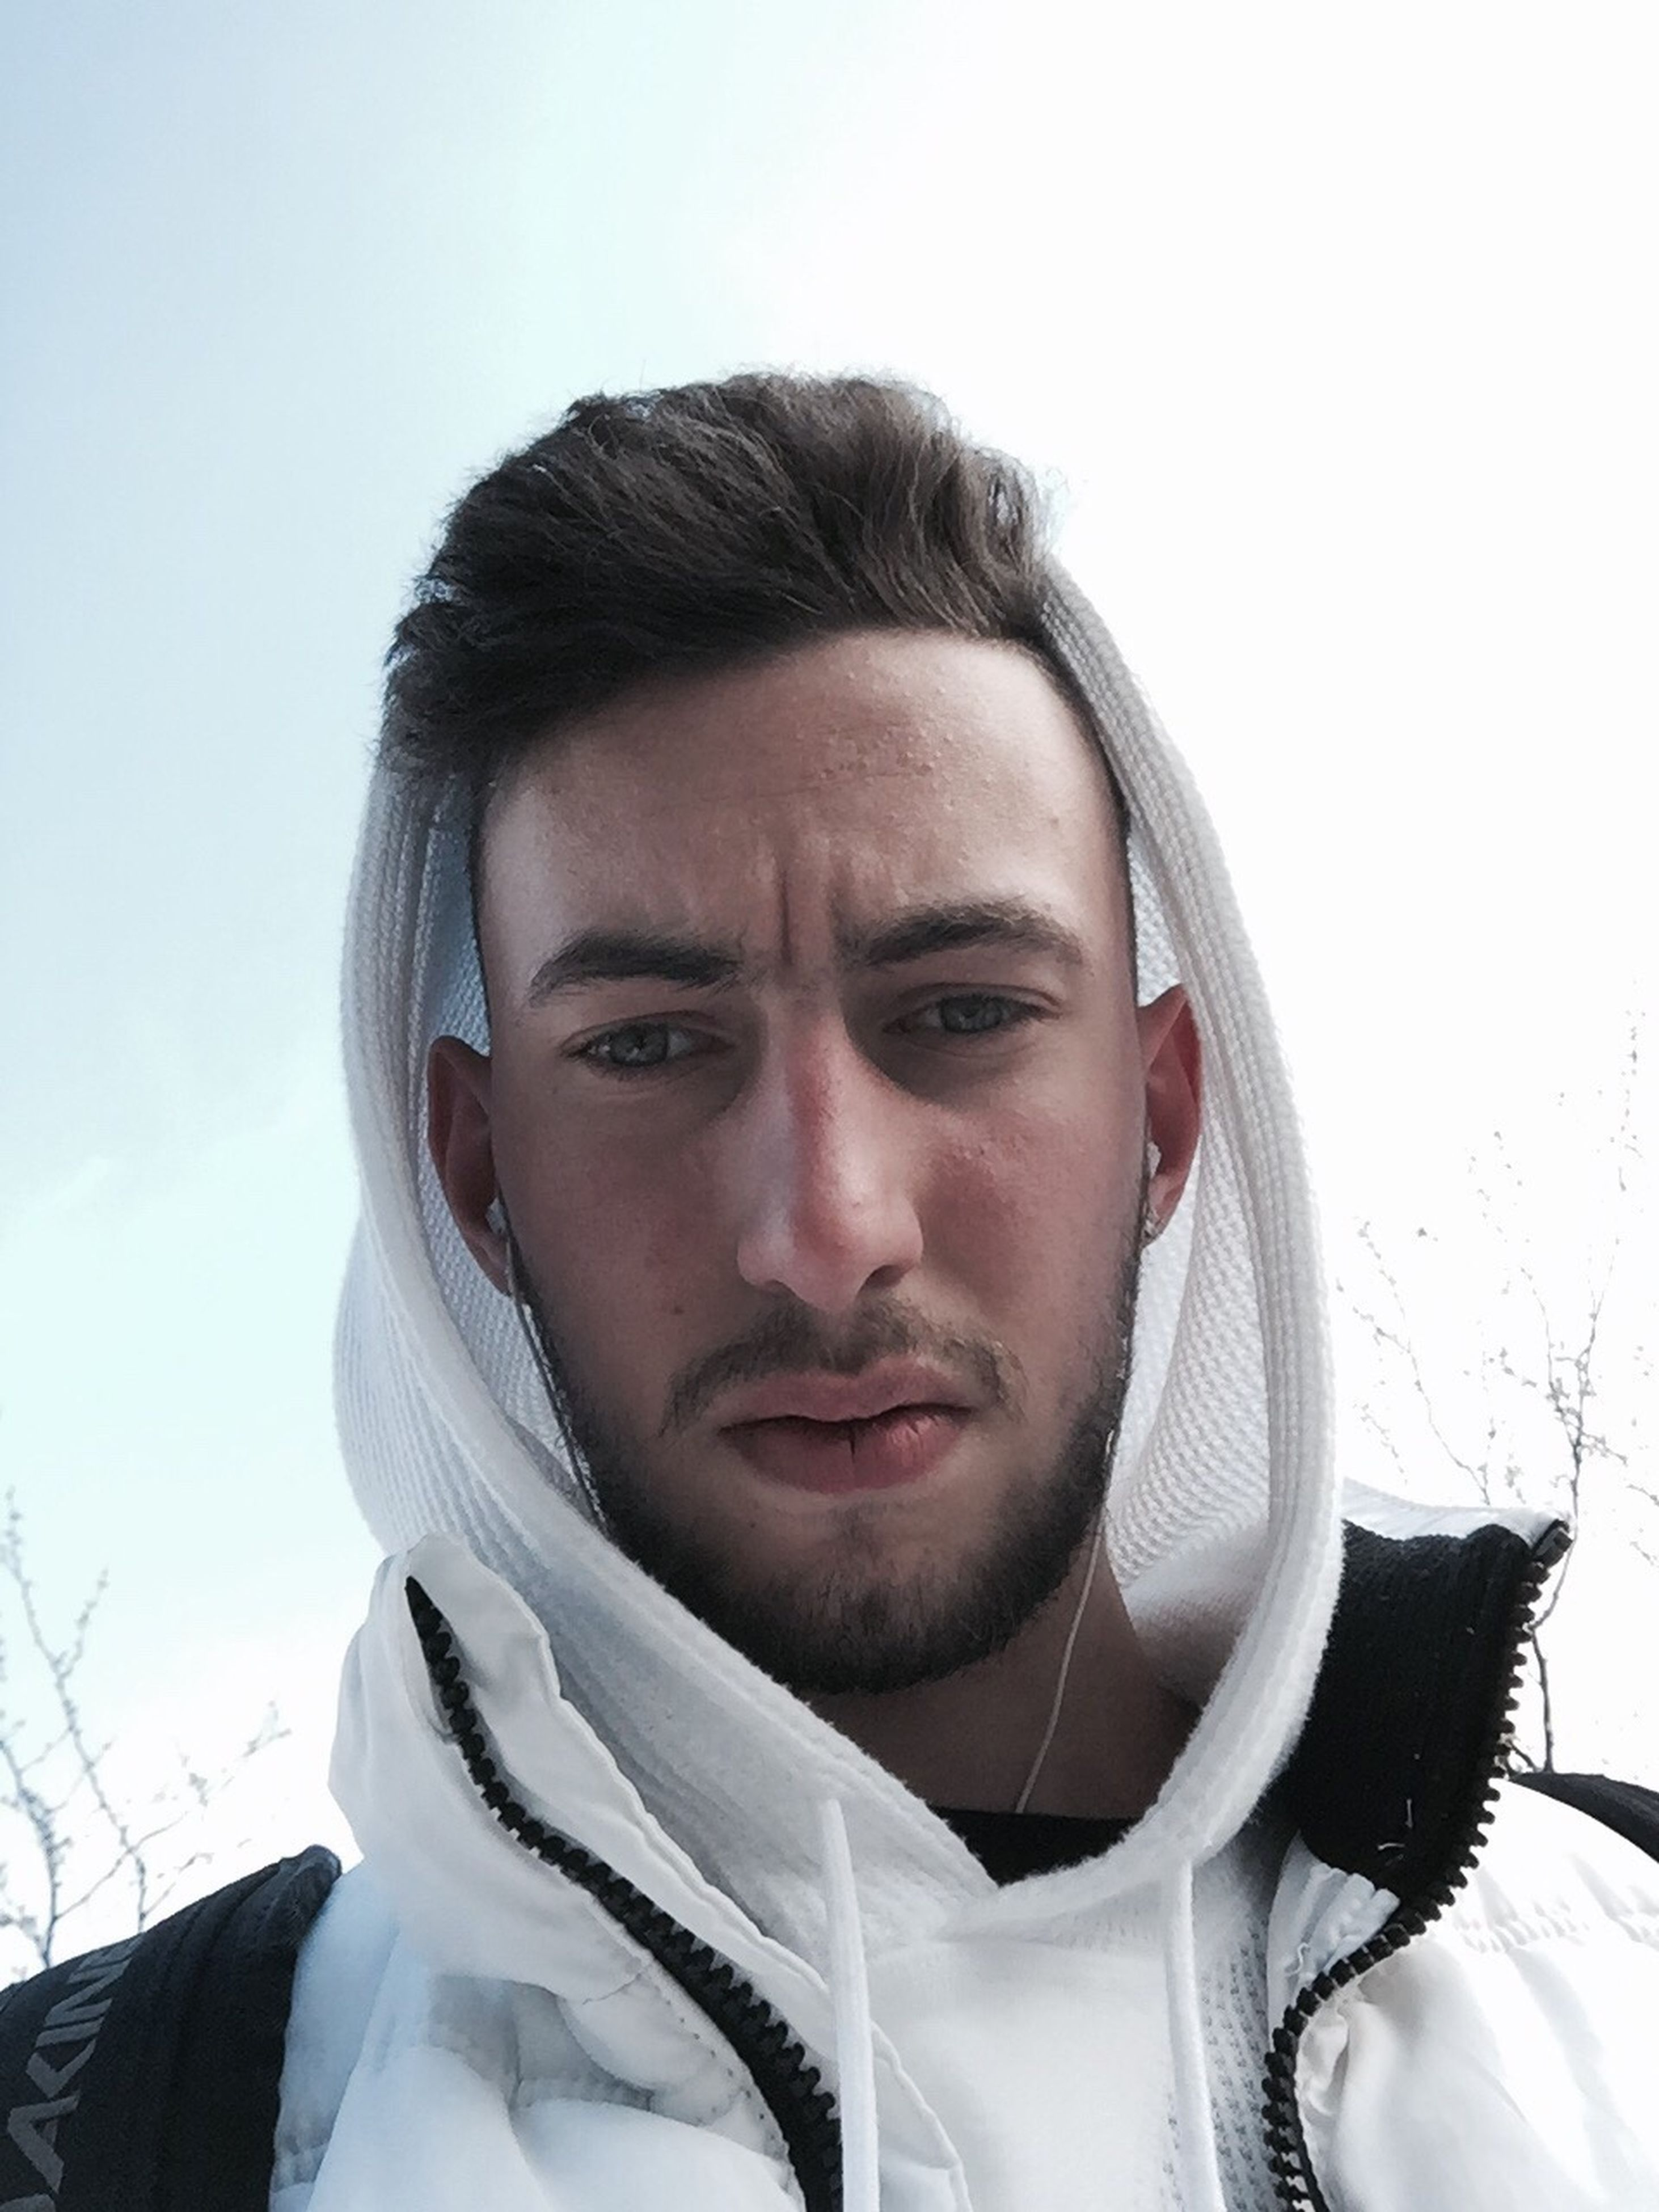 real people, front view, young adult, headshot, lifestyles, young men, leisure activity, head and shoulders, one person, day, looking at camera, portrait, winter, outdoors, close-up, beard, sky, young women, warm clothing